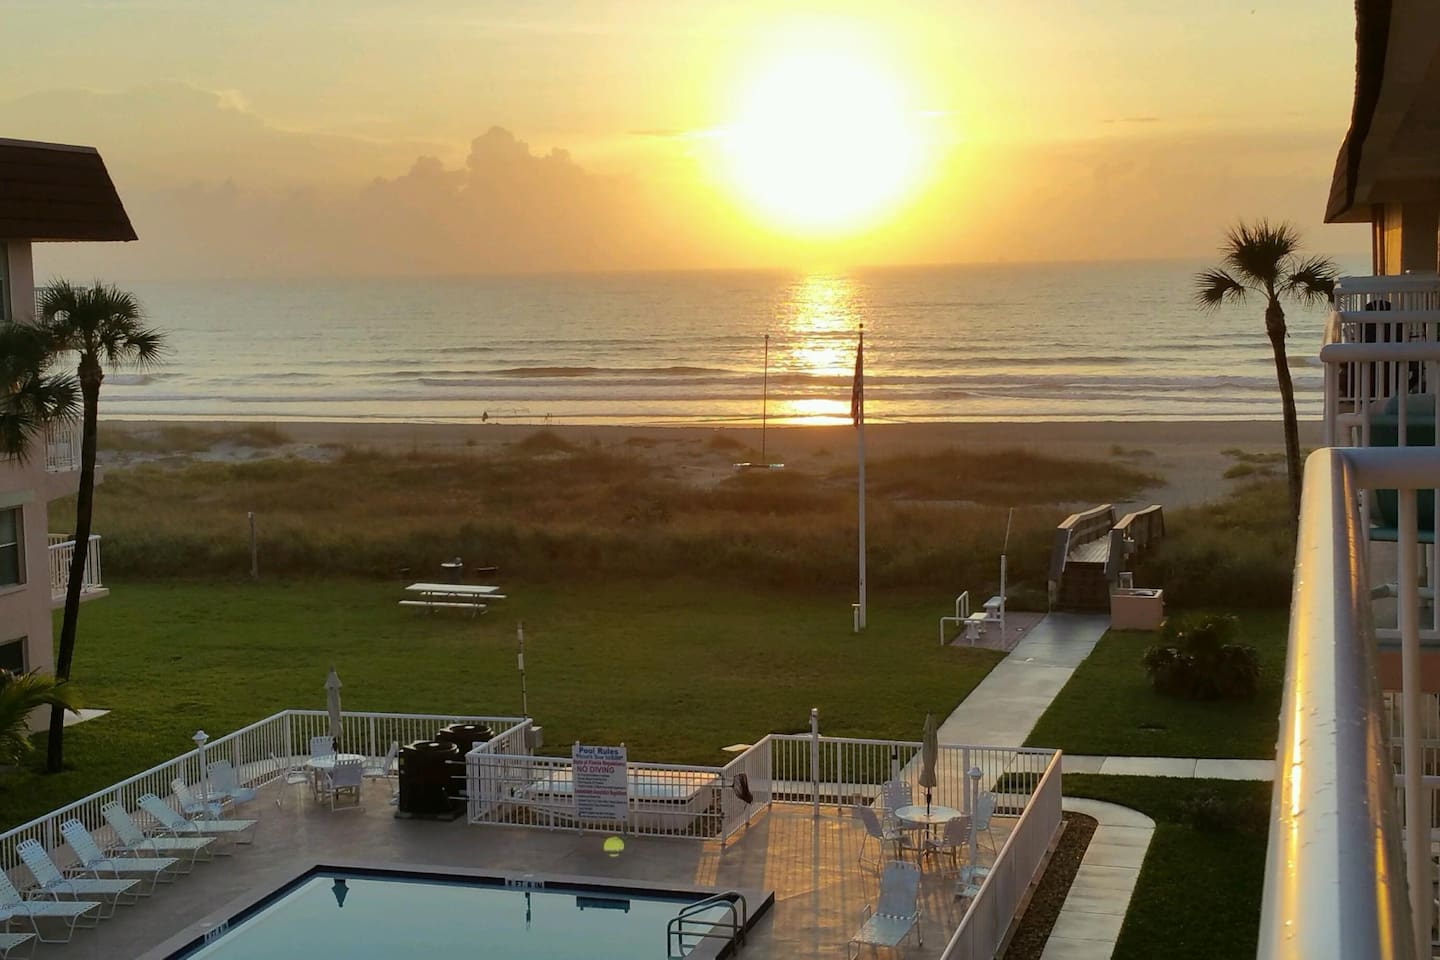 View of sunrise from the balcony